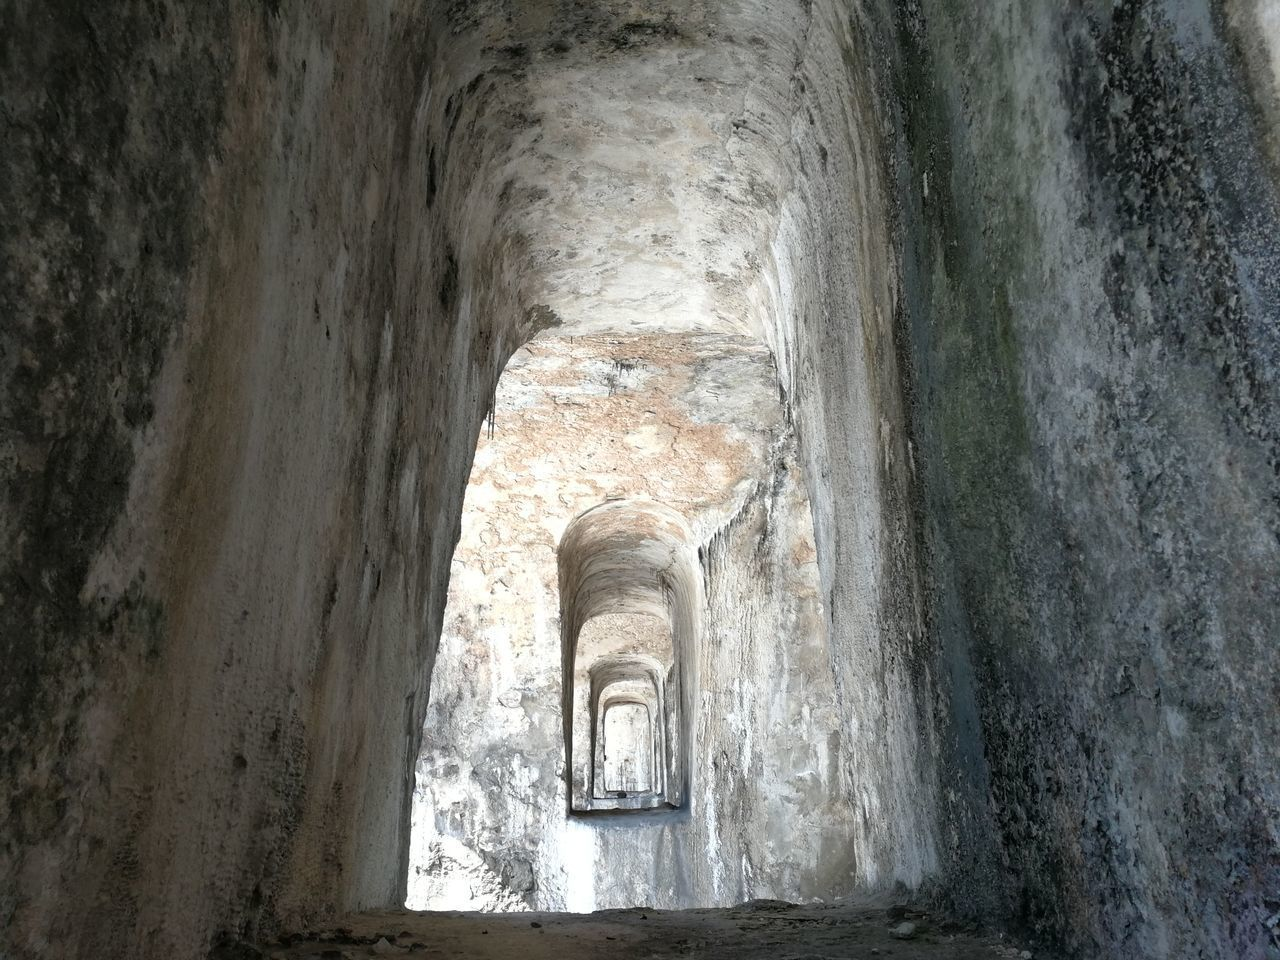 architecture, history, built structure, the past, arch, no people, day, old, ancient, building, indoors, weathered, solid, tunnel, ancient civilization, wall, wall - building feature, travel destinations, abandoned, ruined, ceiling, archaeology